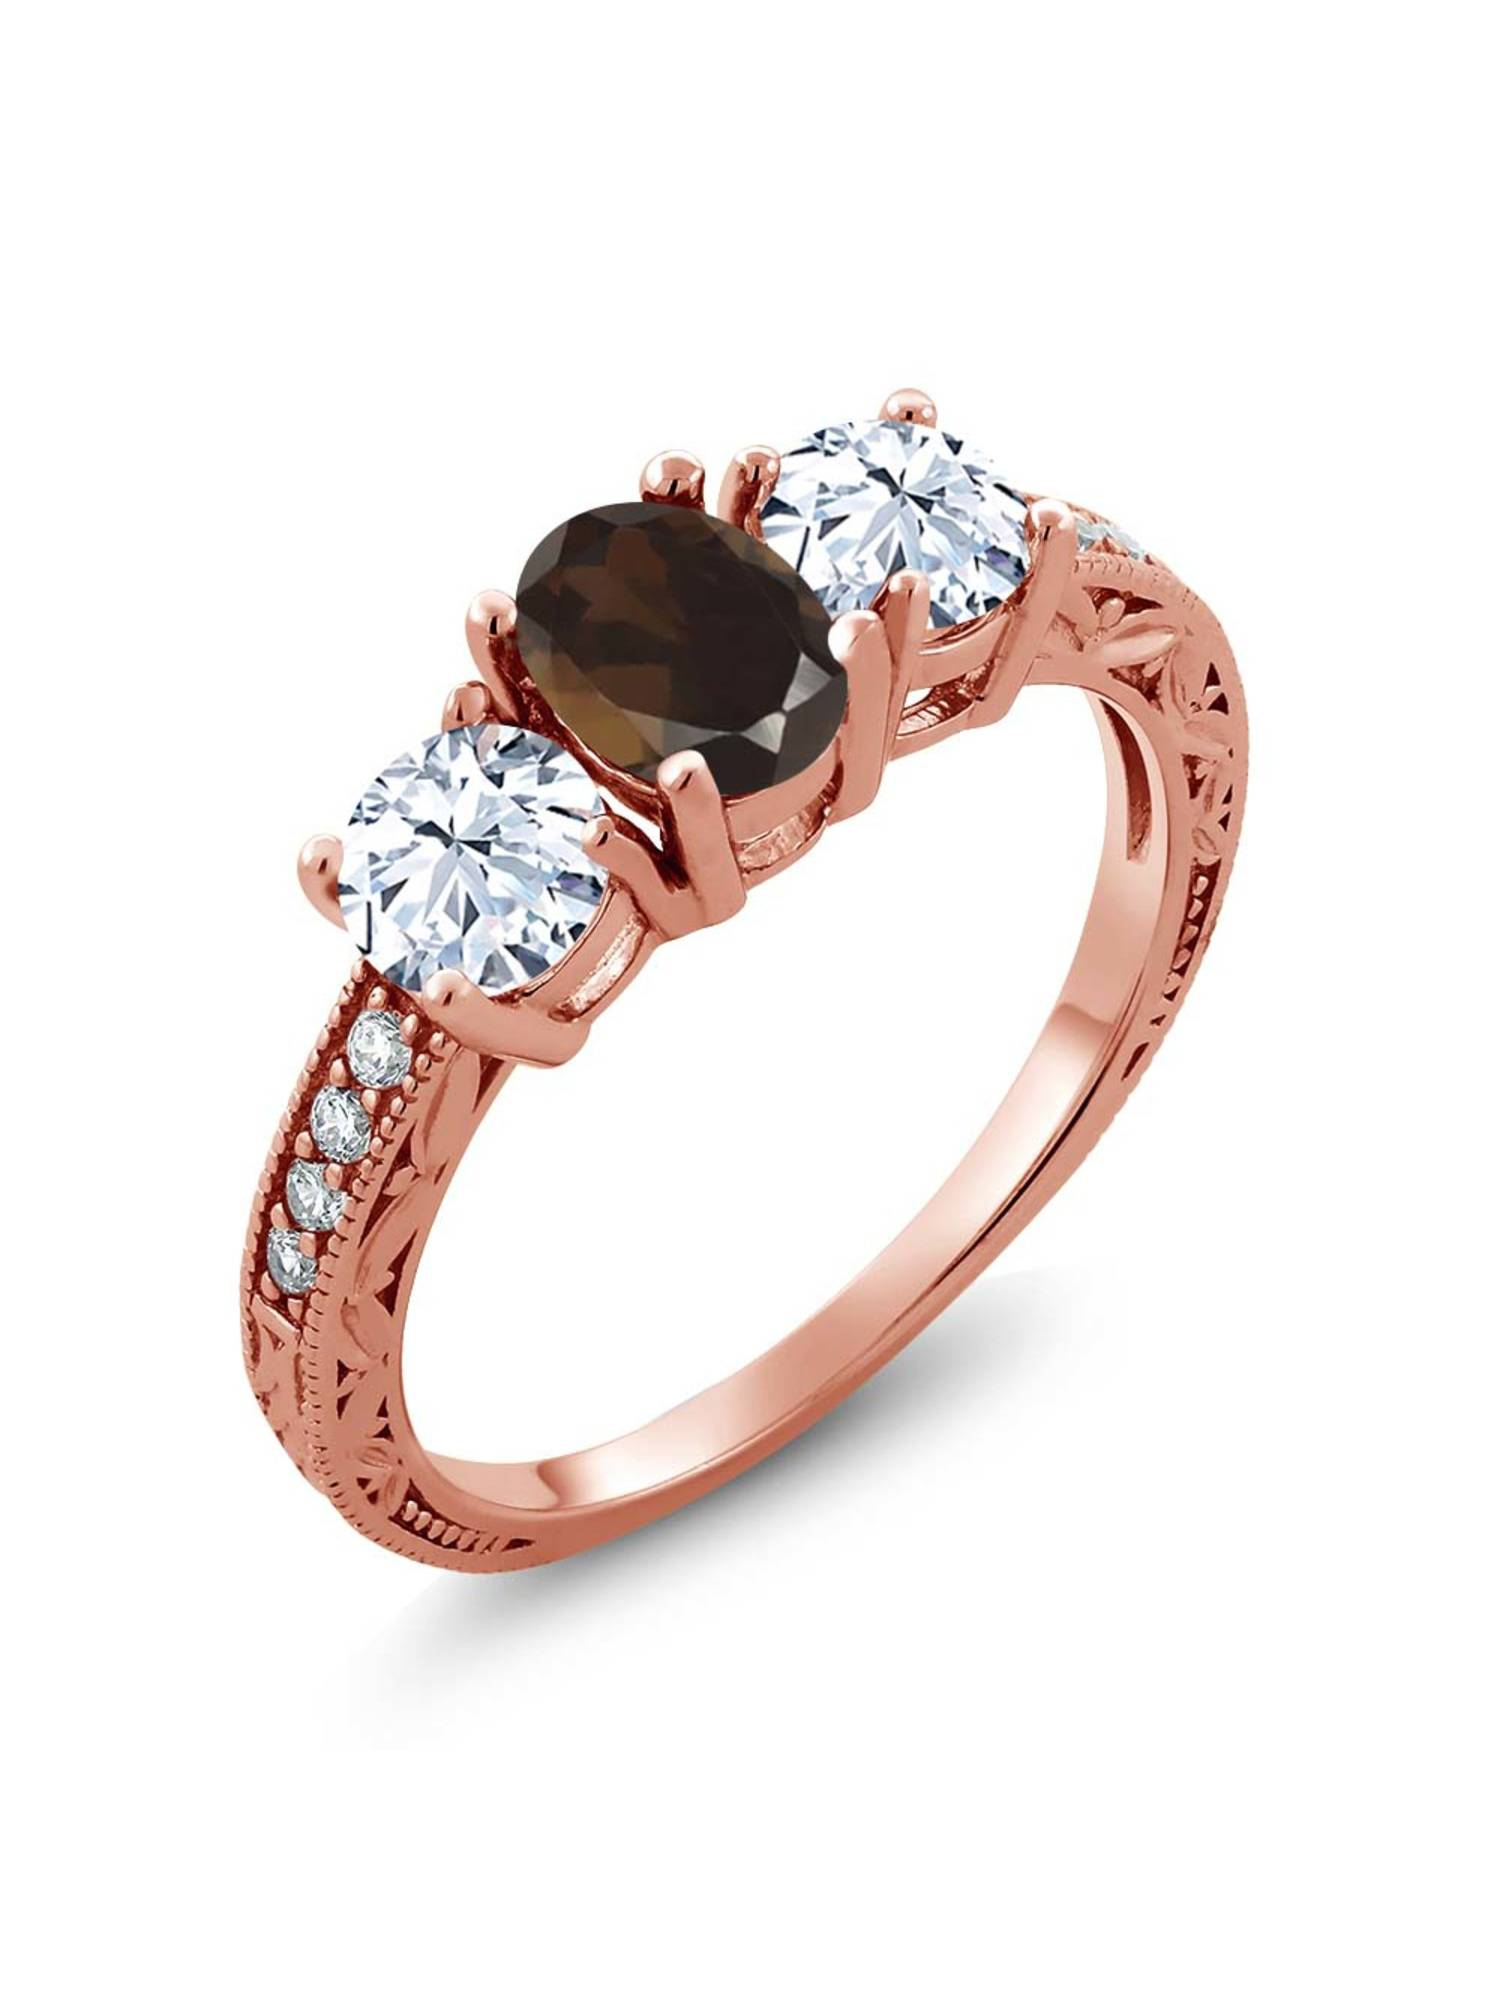 Gem Stone King 2.37 Ct Oval Brown Smoky Quartz 18K Rose Gold Plated Silver Ring